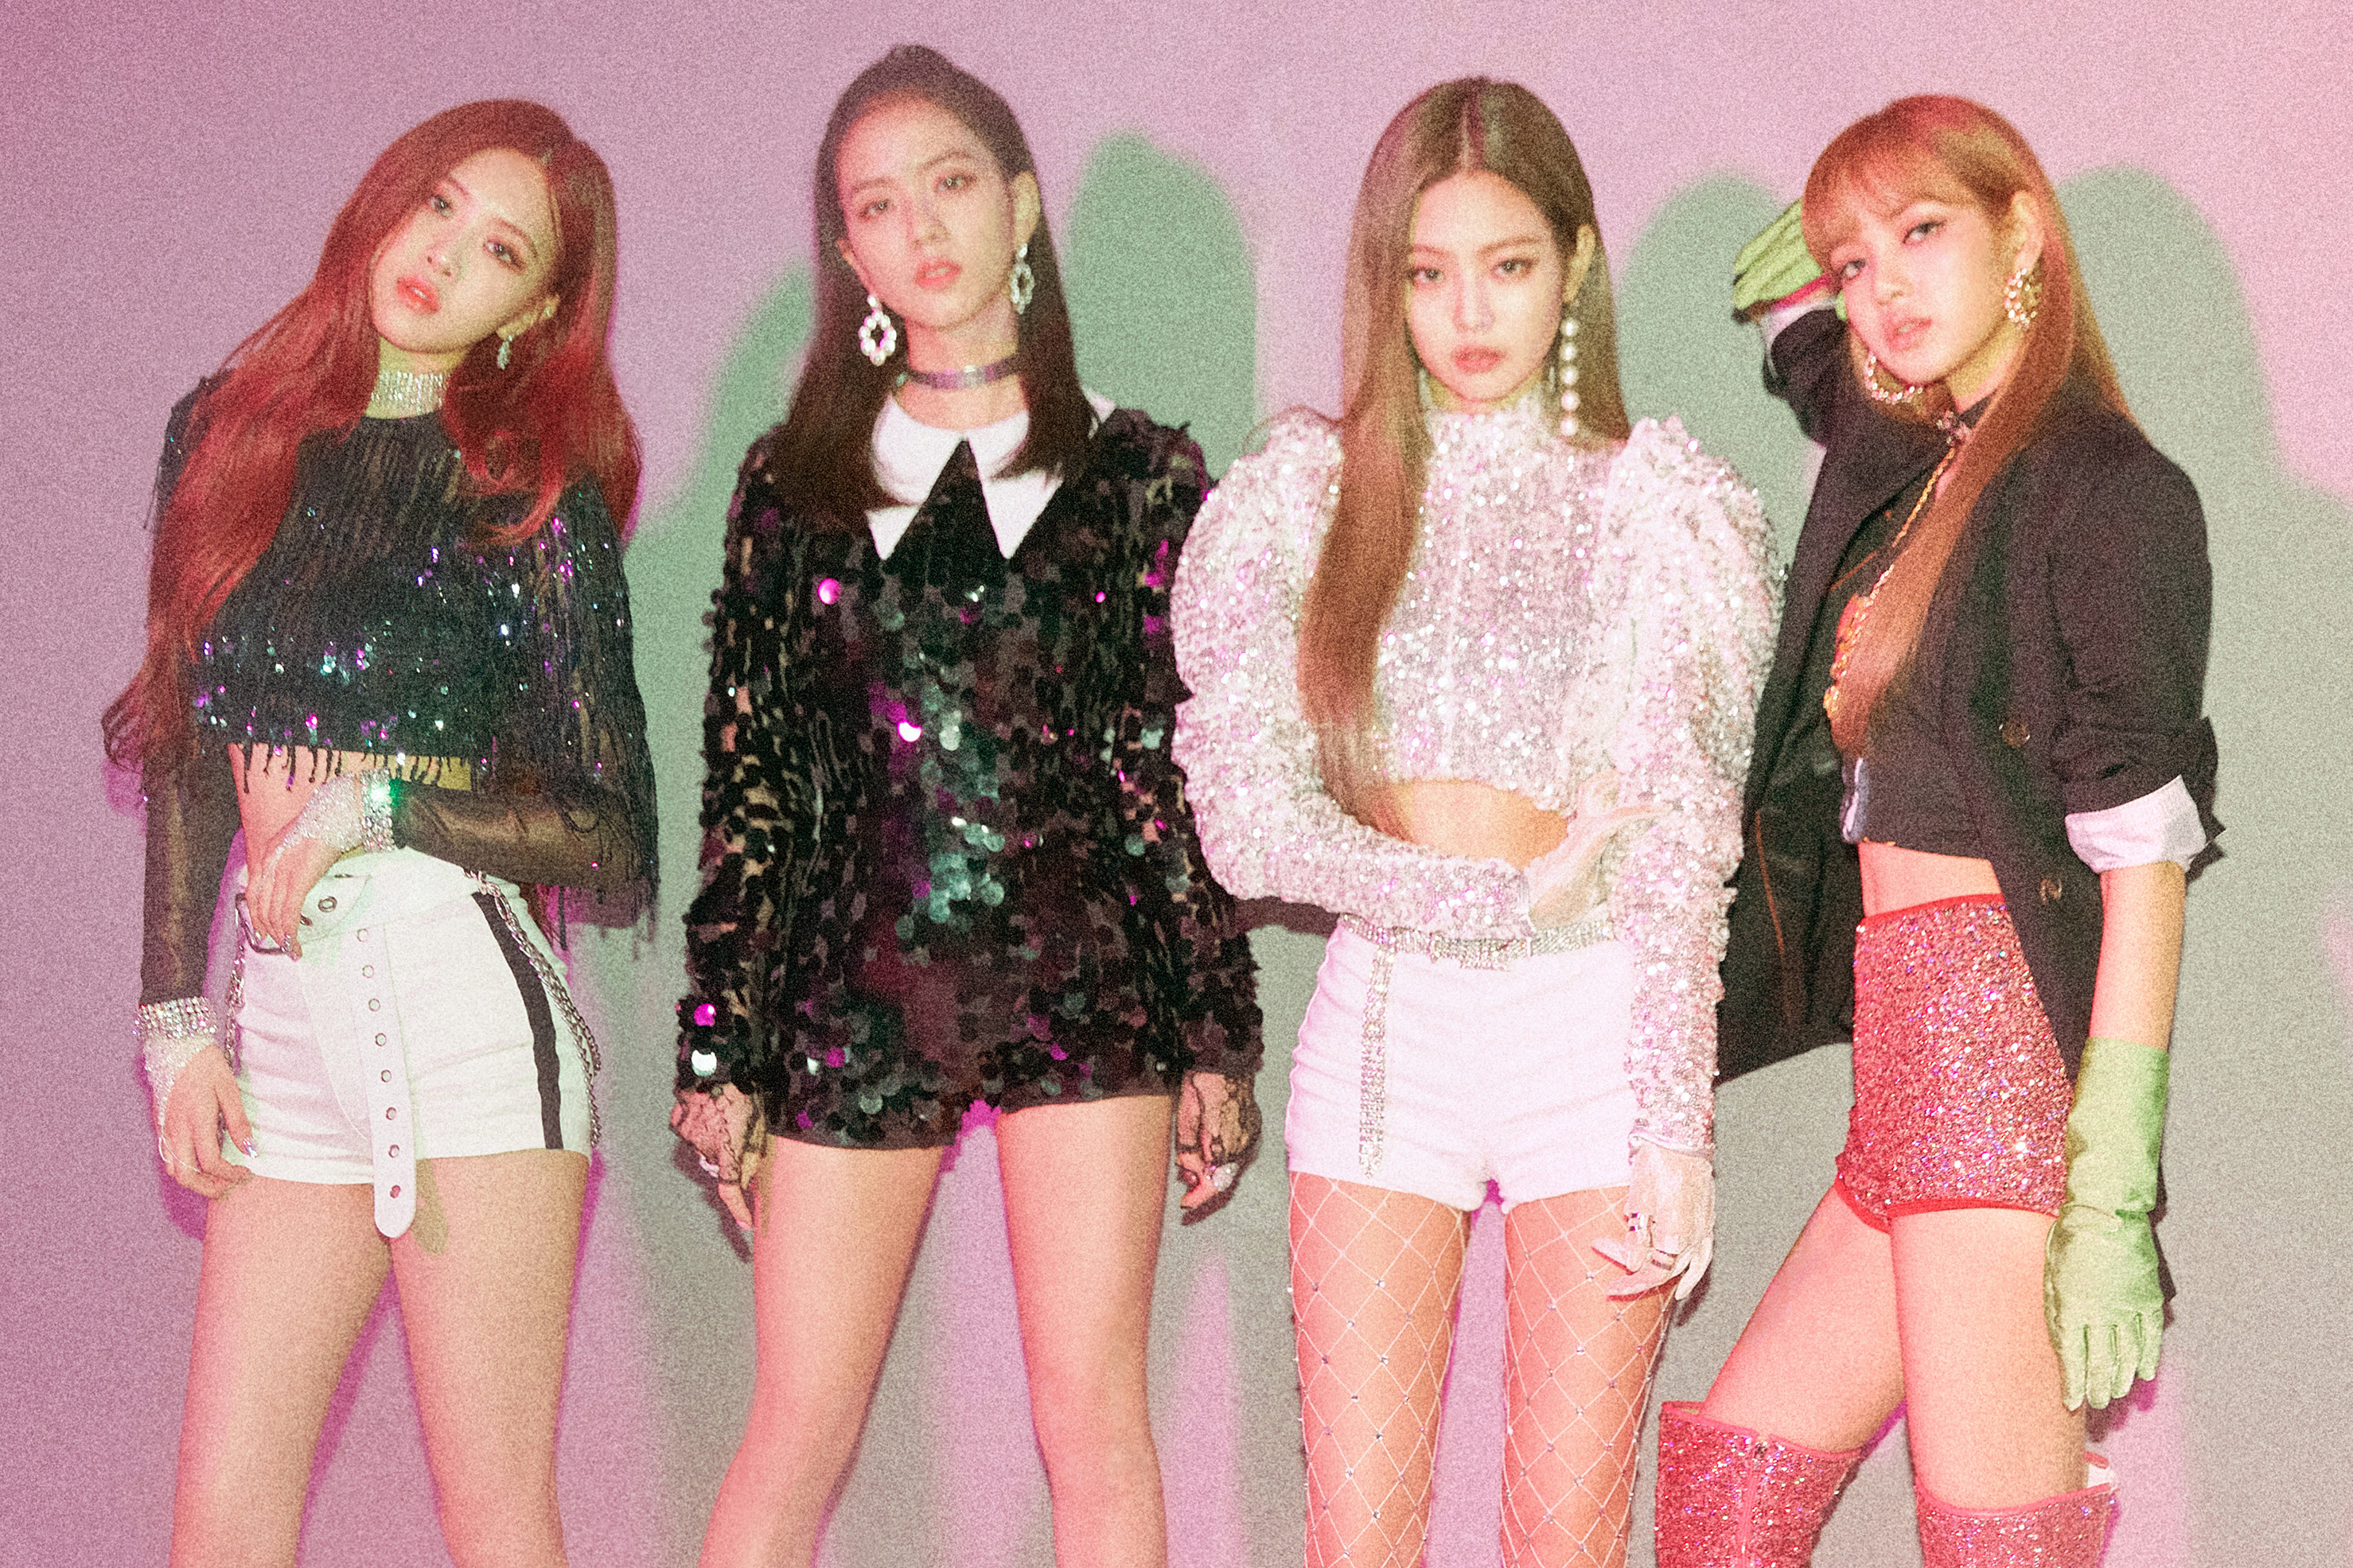 Kpop Group: Blackpink: 5 Things To Know About K-Pop Group Playing